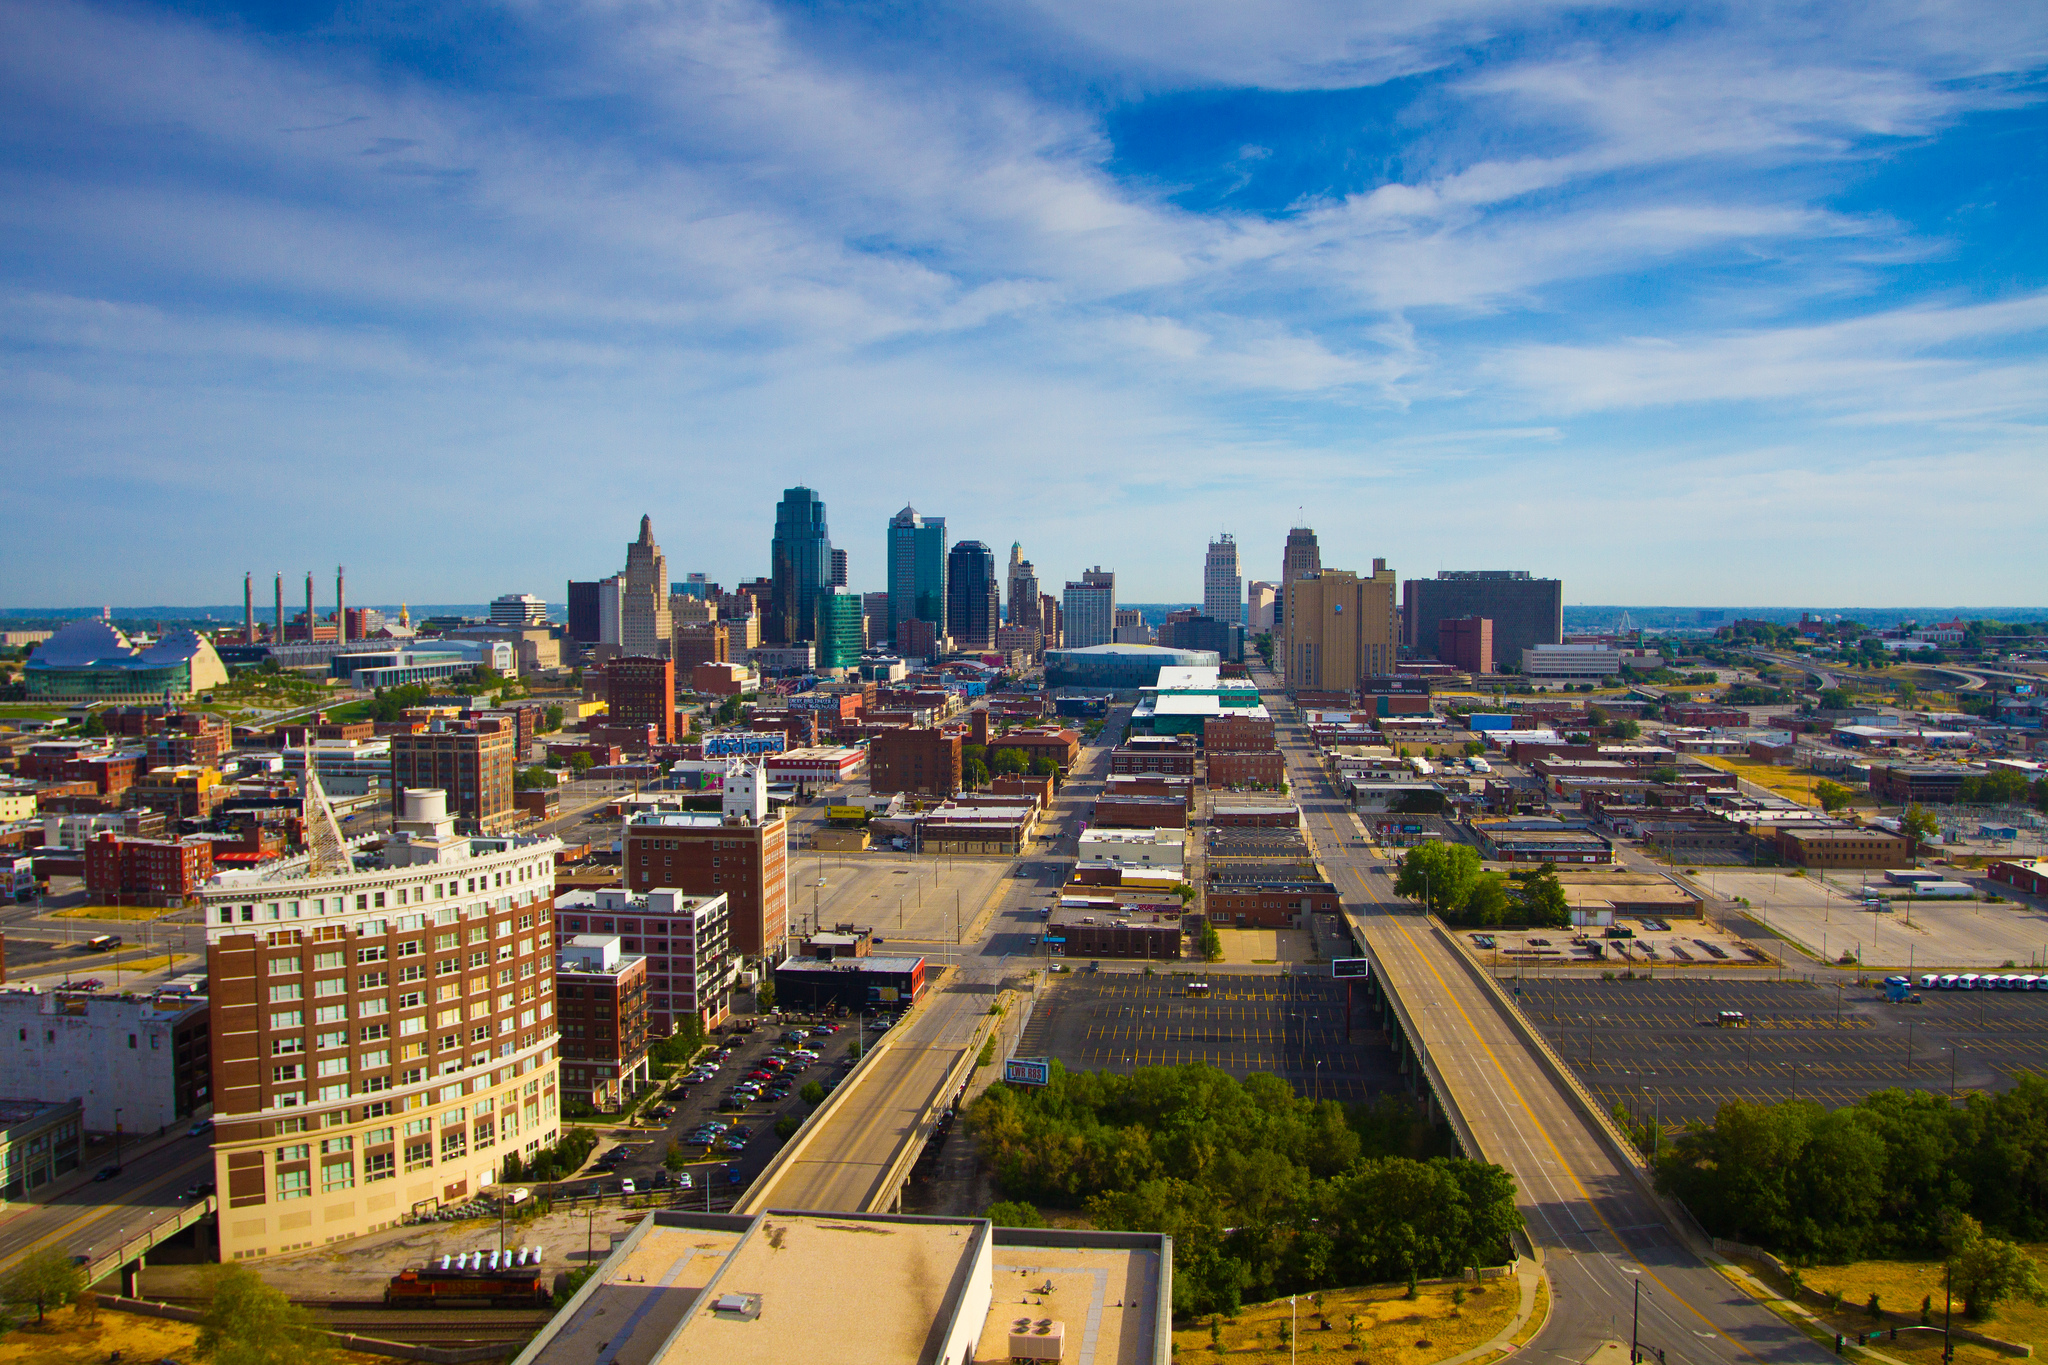 kansas city Homescom kansas city, ks real estate: search houses for sale and mls listings in kansas city, kansas local information: 1000 homes for sale, 1 condos, 0 foreclosure.